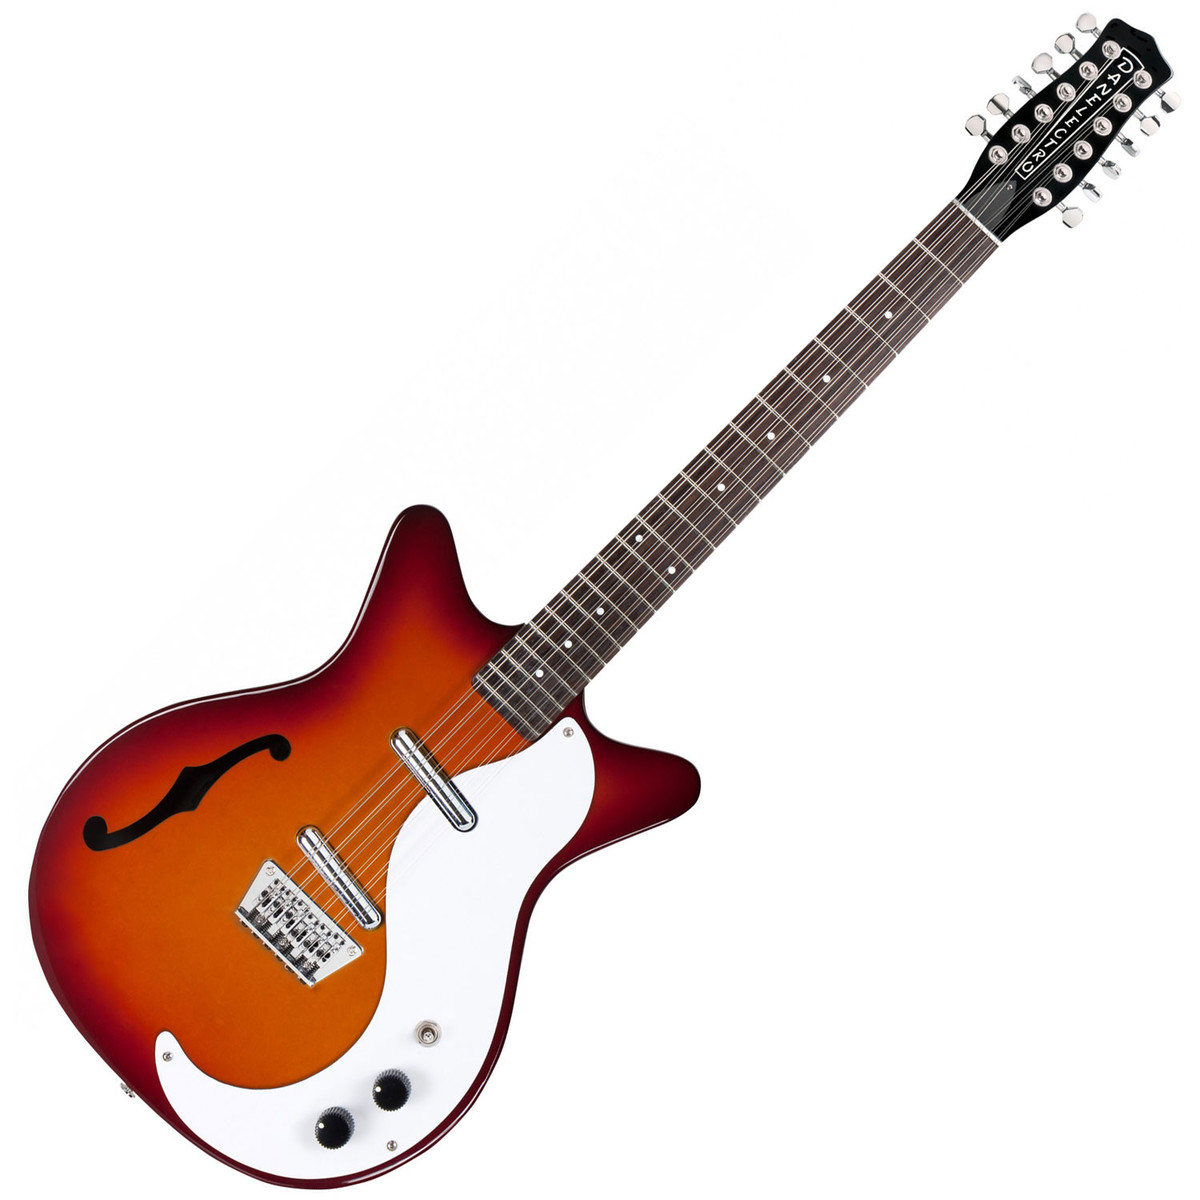 Danelectro Dc59 12 String Electric Guitar Cherry Sunburst